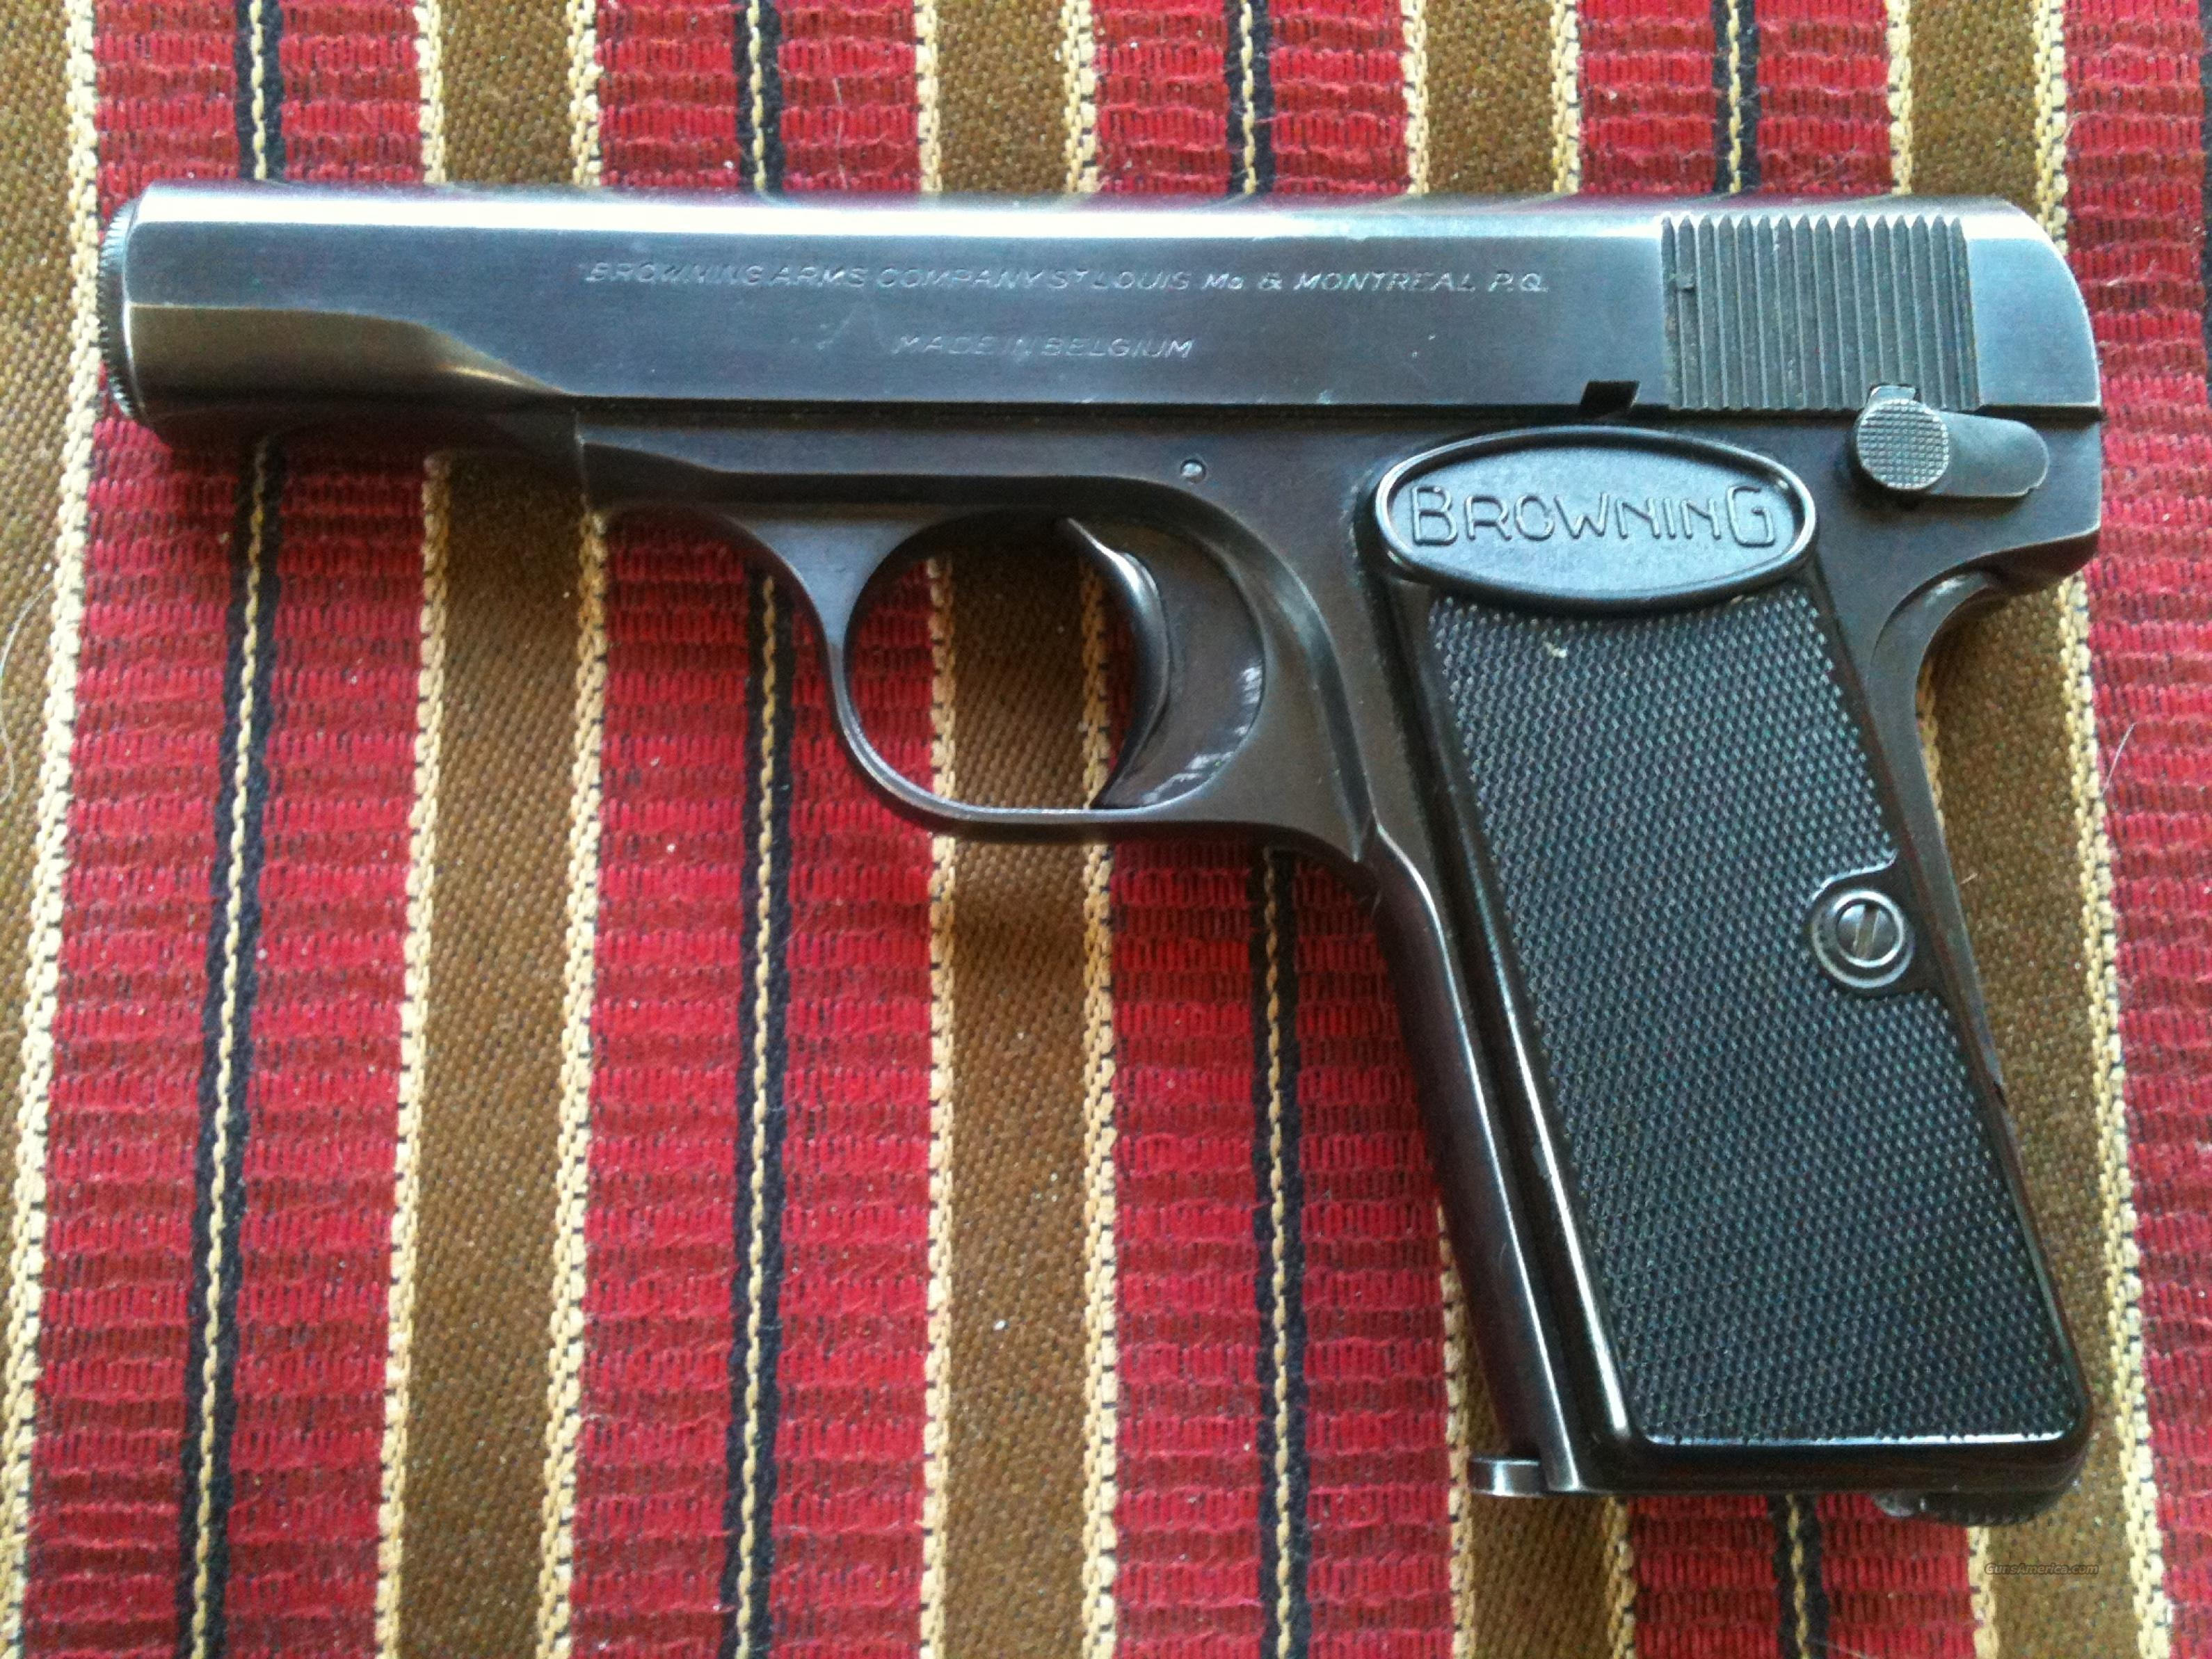 Browning M1955 .380 All-Original, Near Mint  Guns > Pistols > Browning Pistols > Other Autos